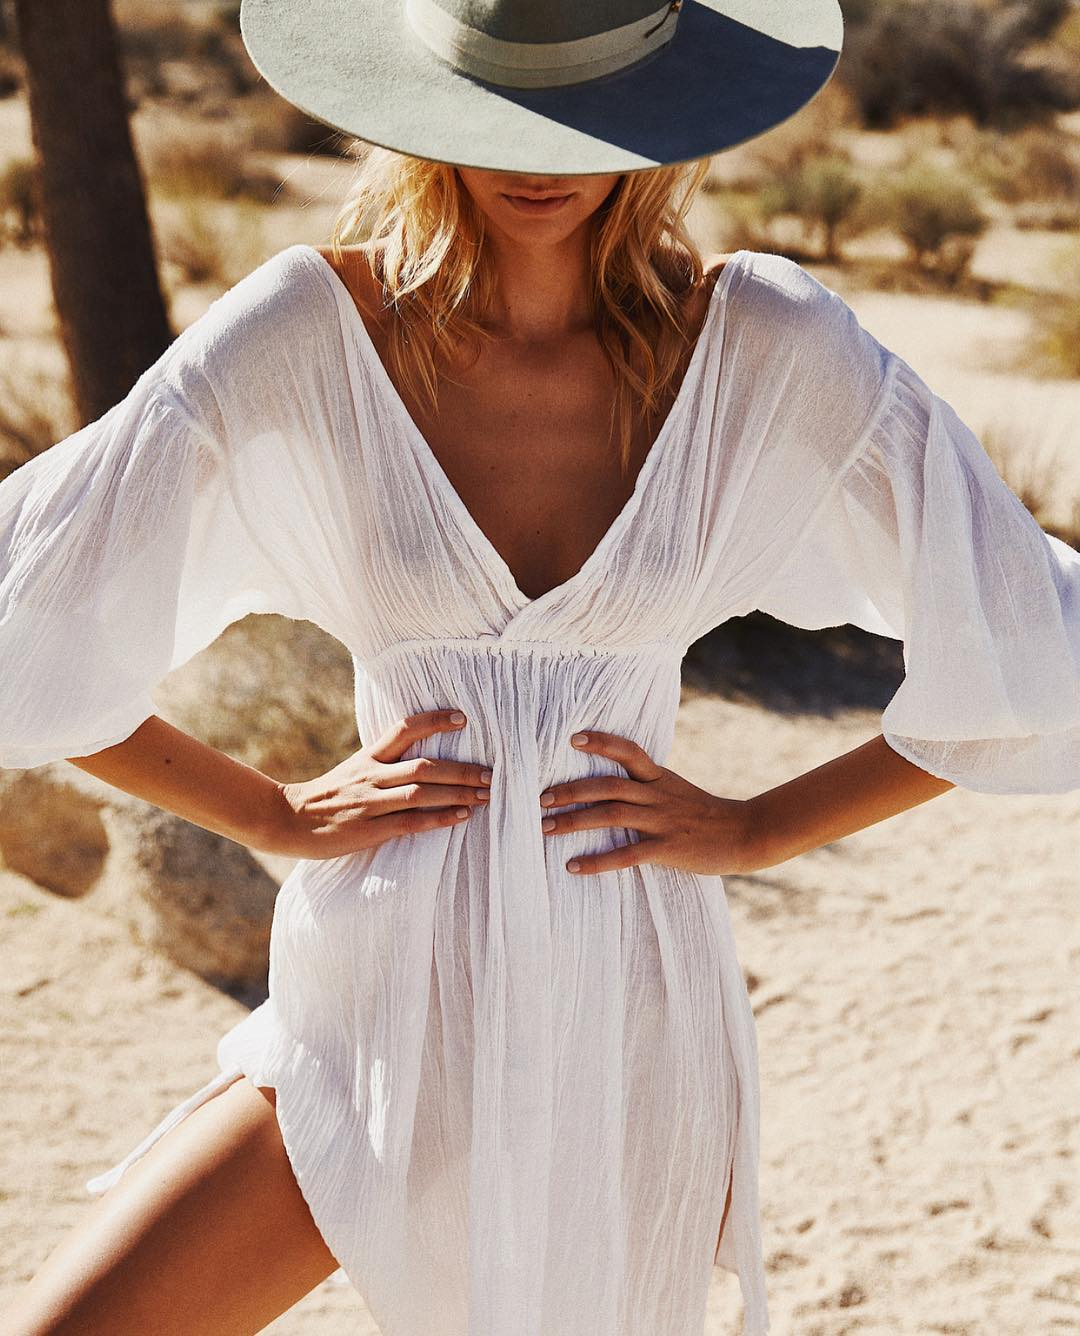 Peasant Semi-Sheer Bohemian Style White Dress For Summer 2020